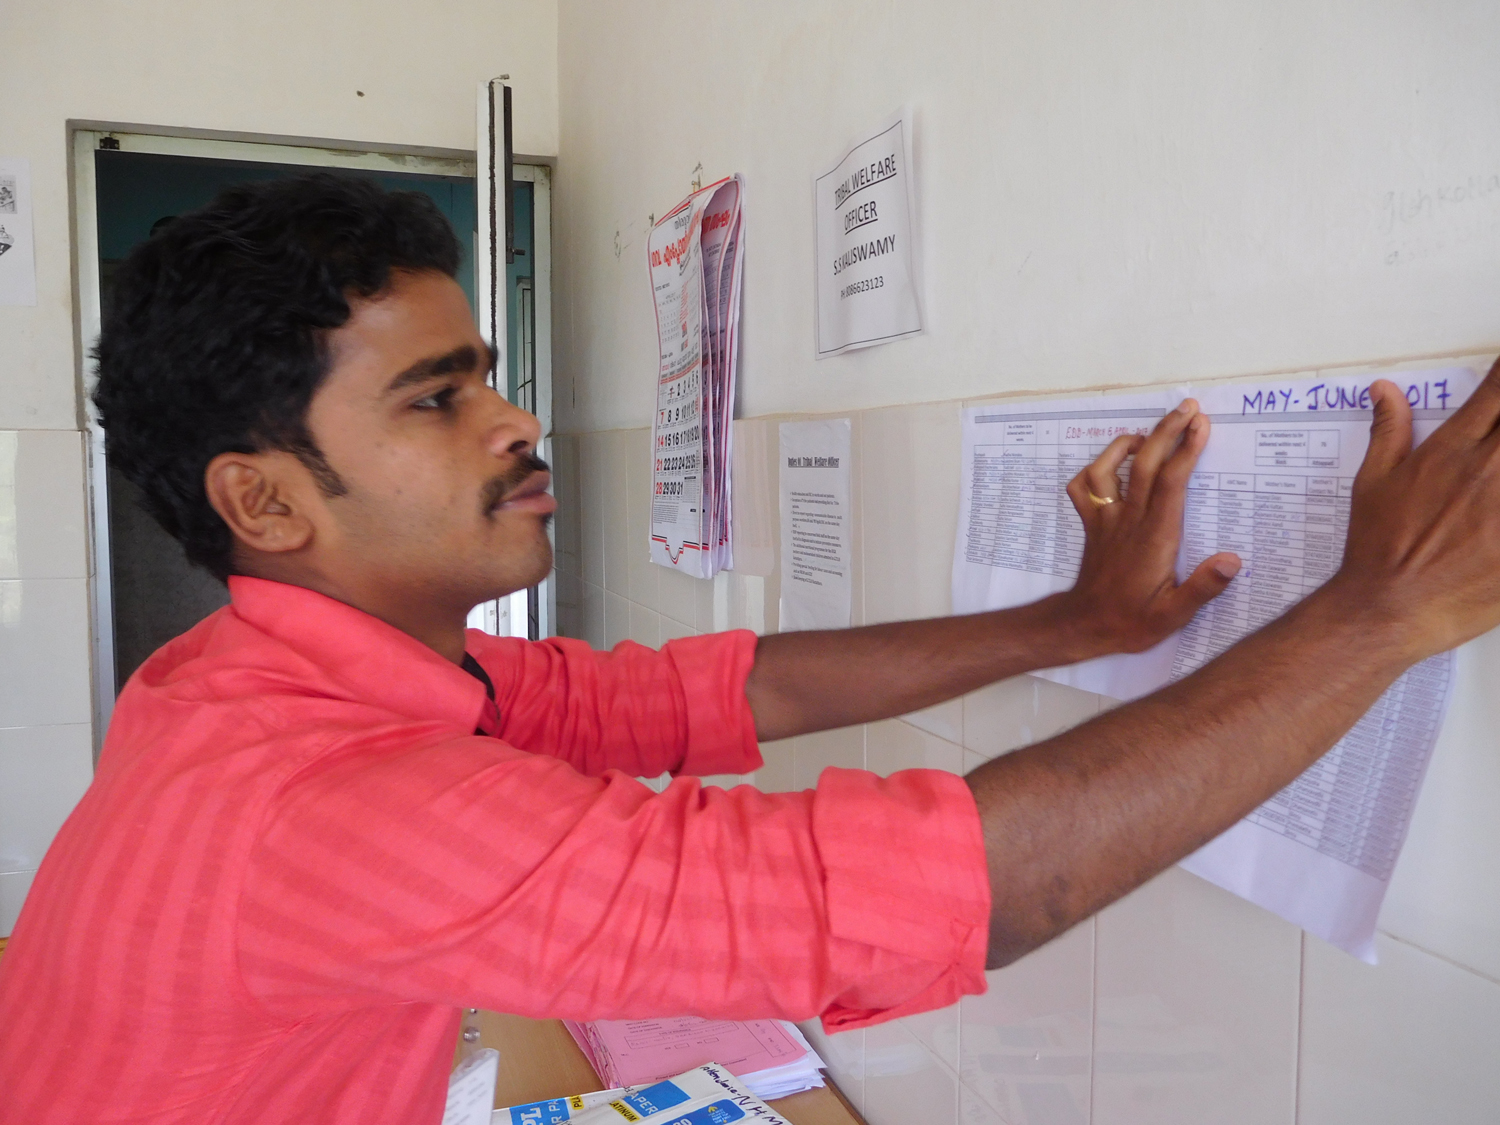 Kaliswamy, the tribal development officer at the Government Tribal Speciality Hospital, puts up a list of pregnant tribal women at his workstation.